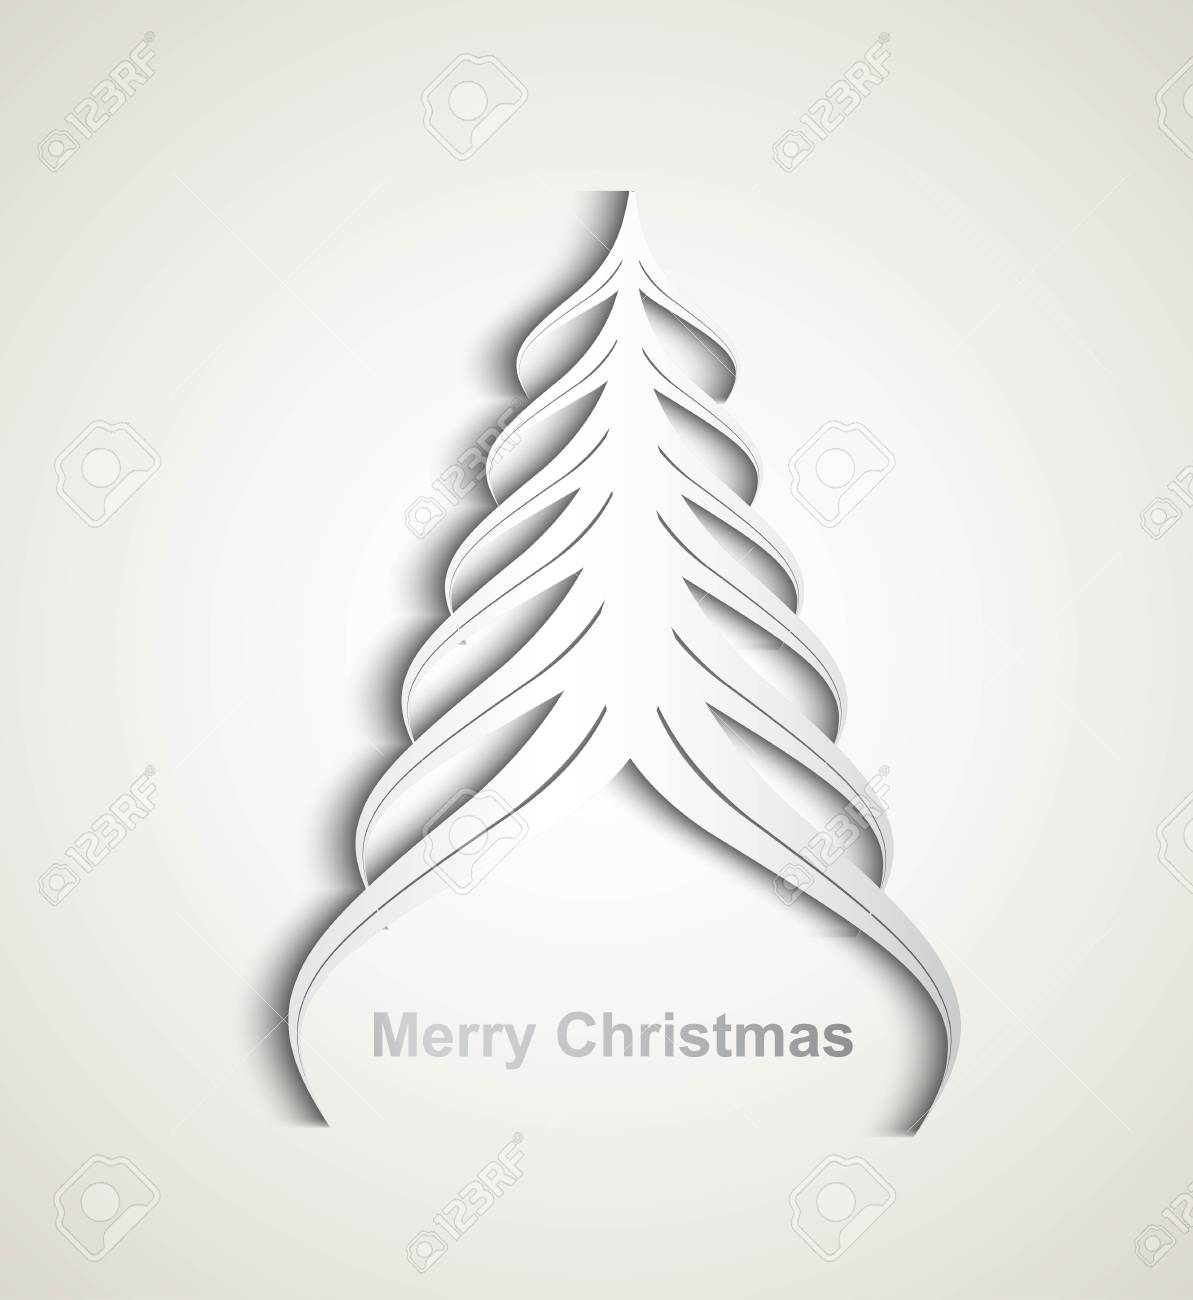 merry christmas stylish tree colorful whit background Stock Vector - 17789360